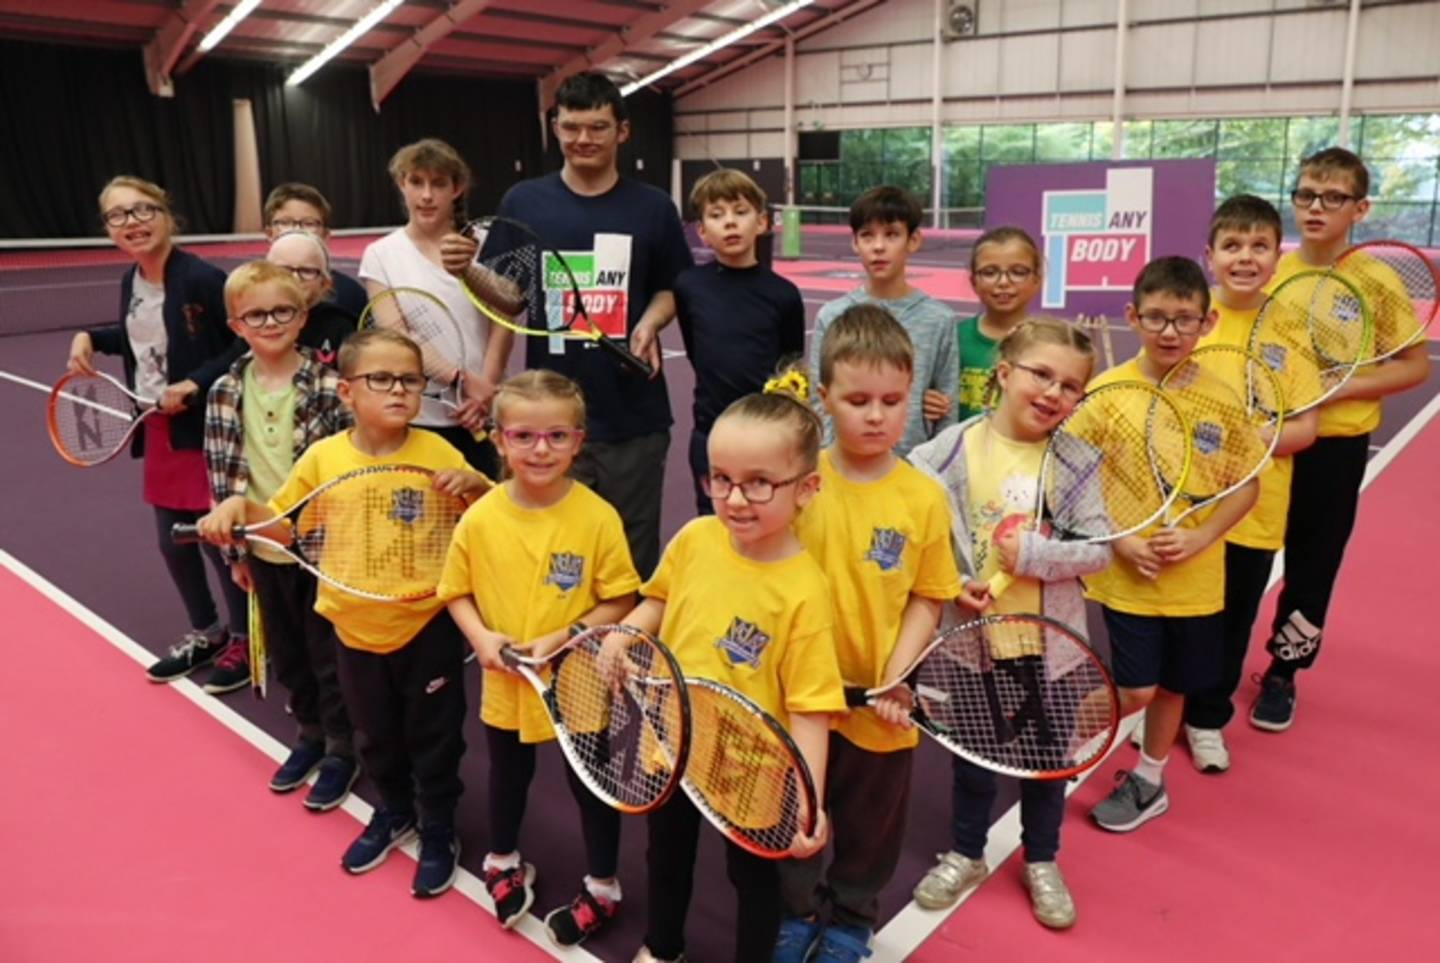 Group of children and tennis coach with tennis rackets in hand smiling to camera.